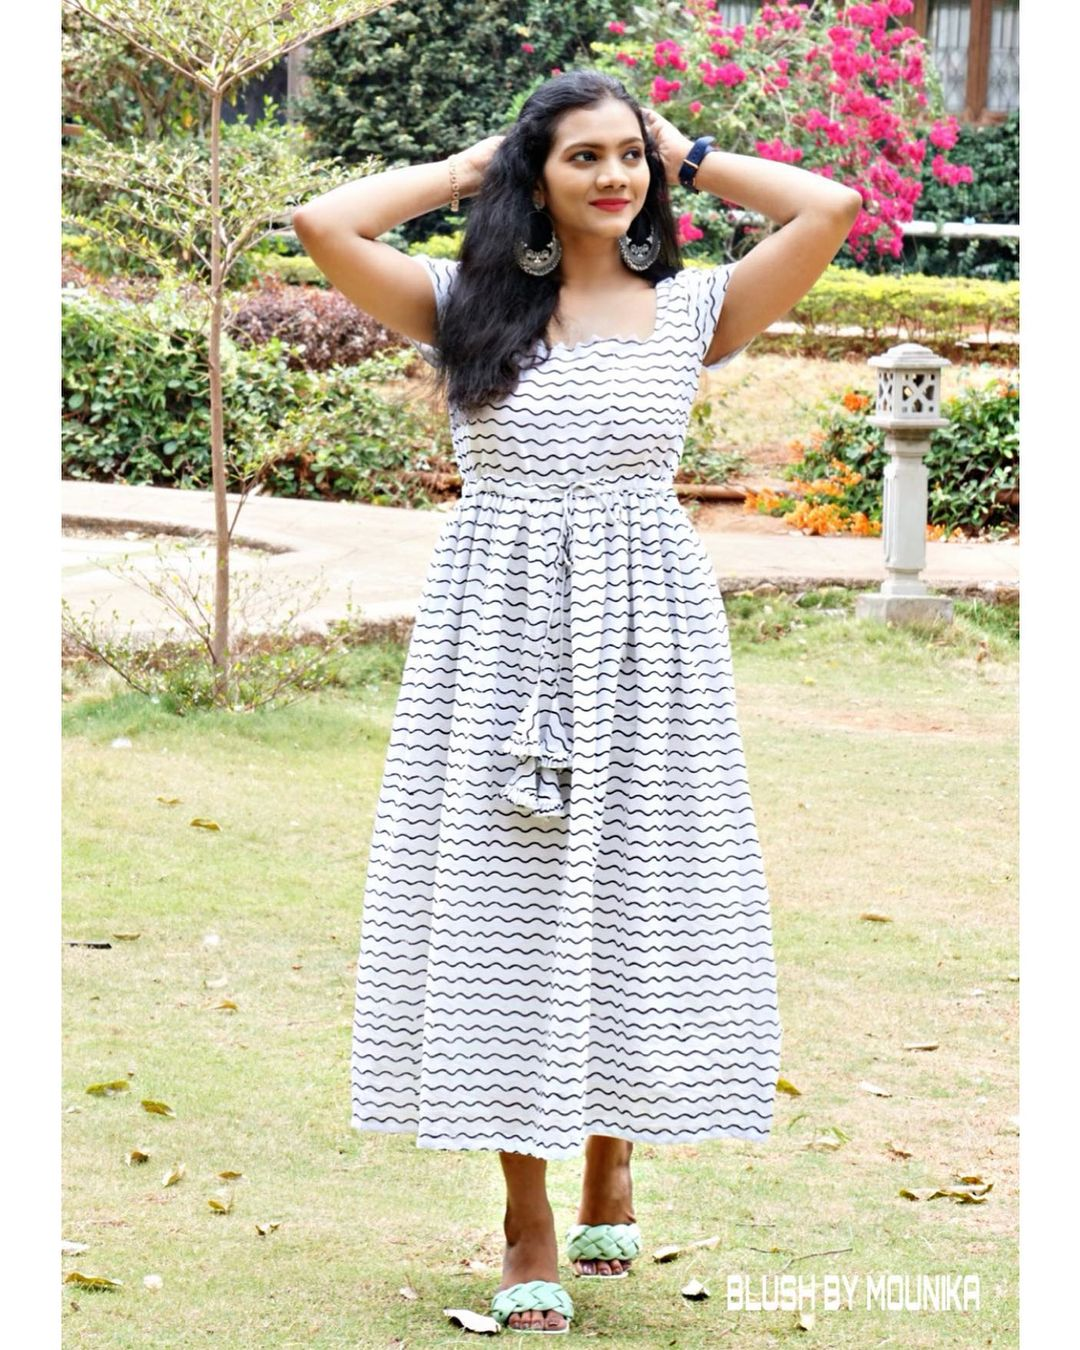 Bringing some Summer Midi Combo dresses in Blush by Mounika 